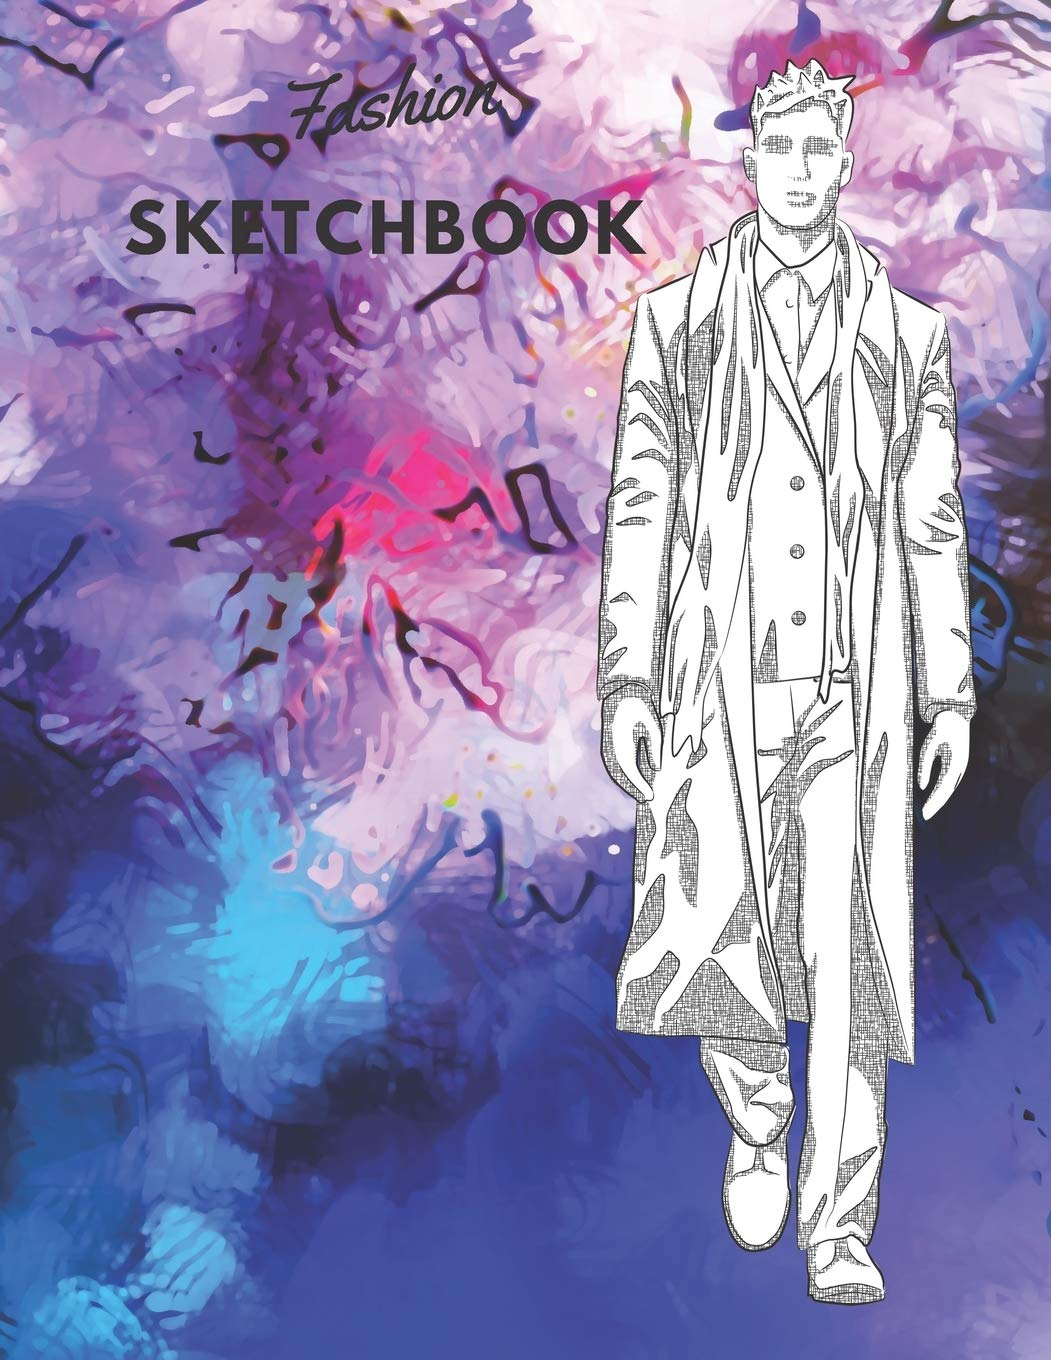 Fashion Sketchbook 100 Large Male Figure Templates With 10 Different Poses For Easily Sketching Your Fashion Design Styles Coloring Carolyn 9781699846773 Amazon Com Books